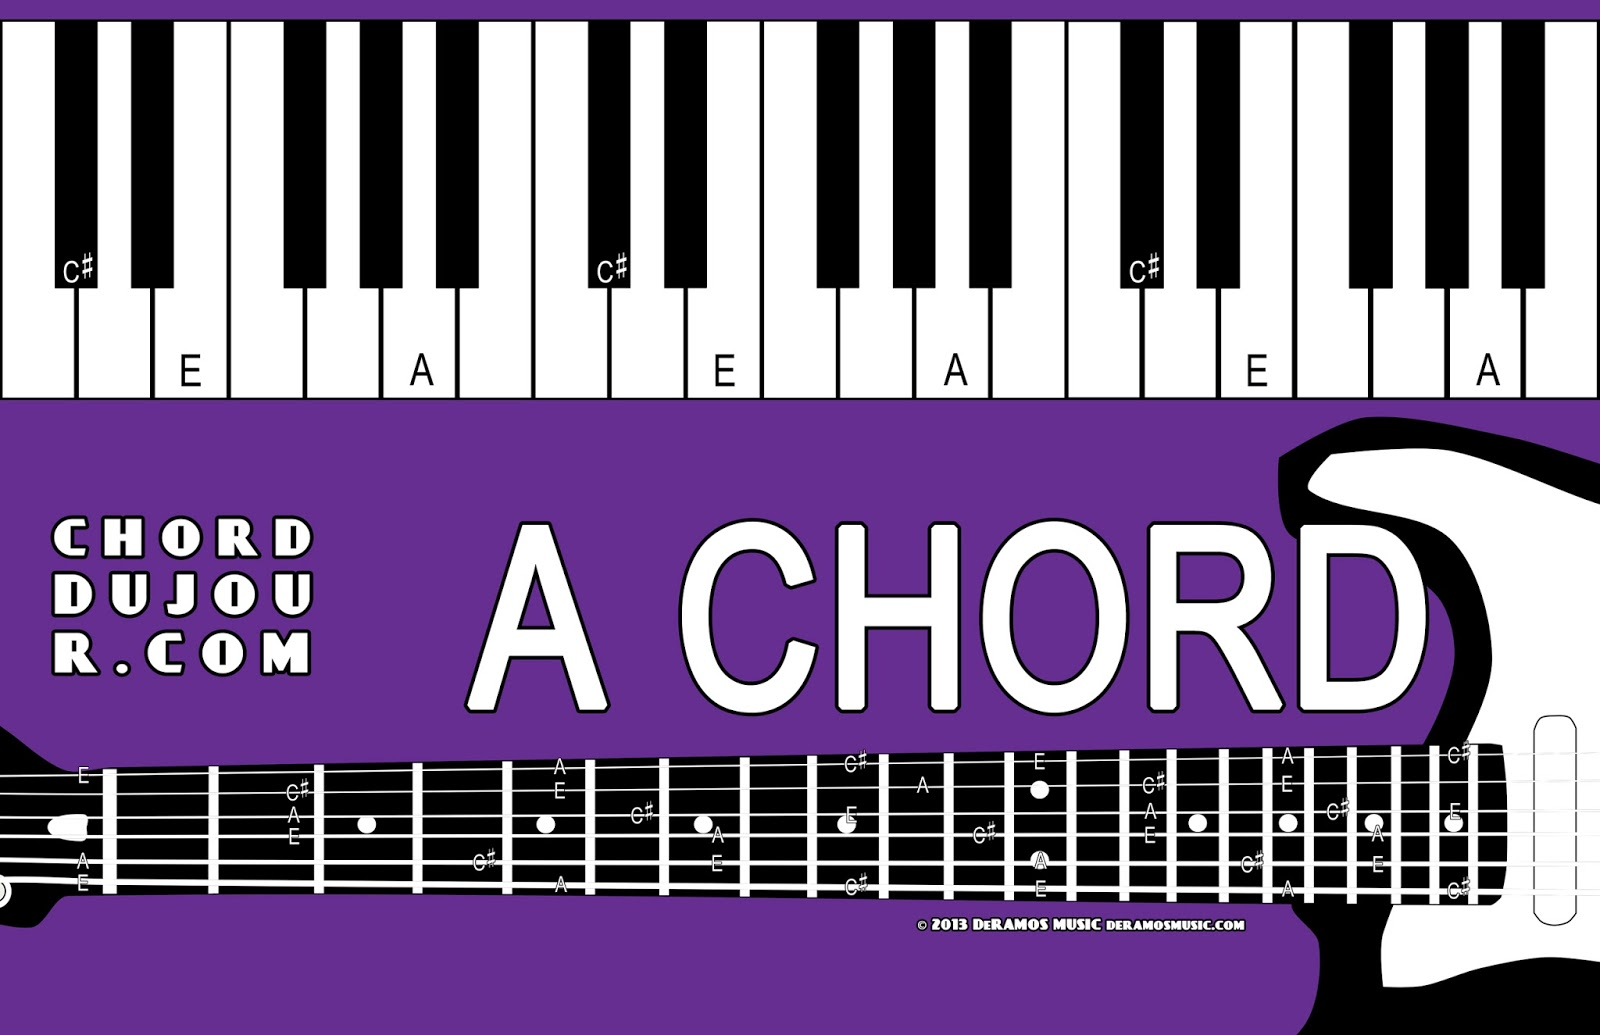 Chord du jour august 2013 dictionary a chord hexwebz Choice Image